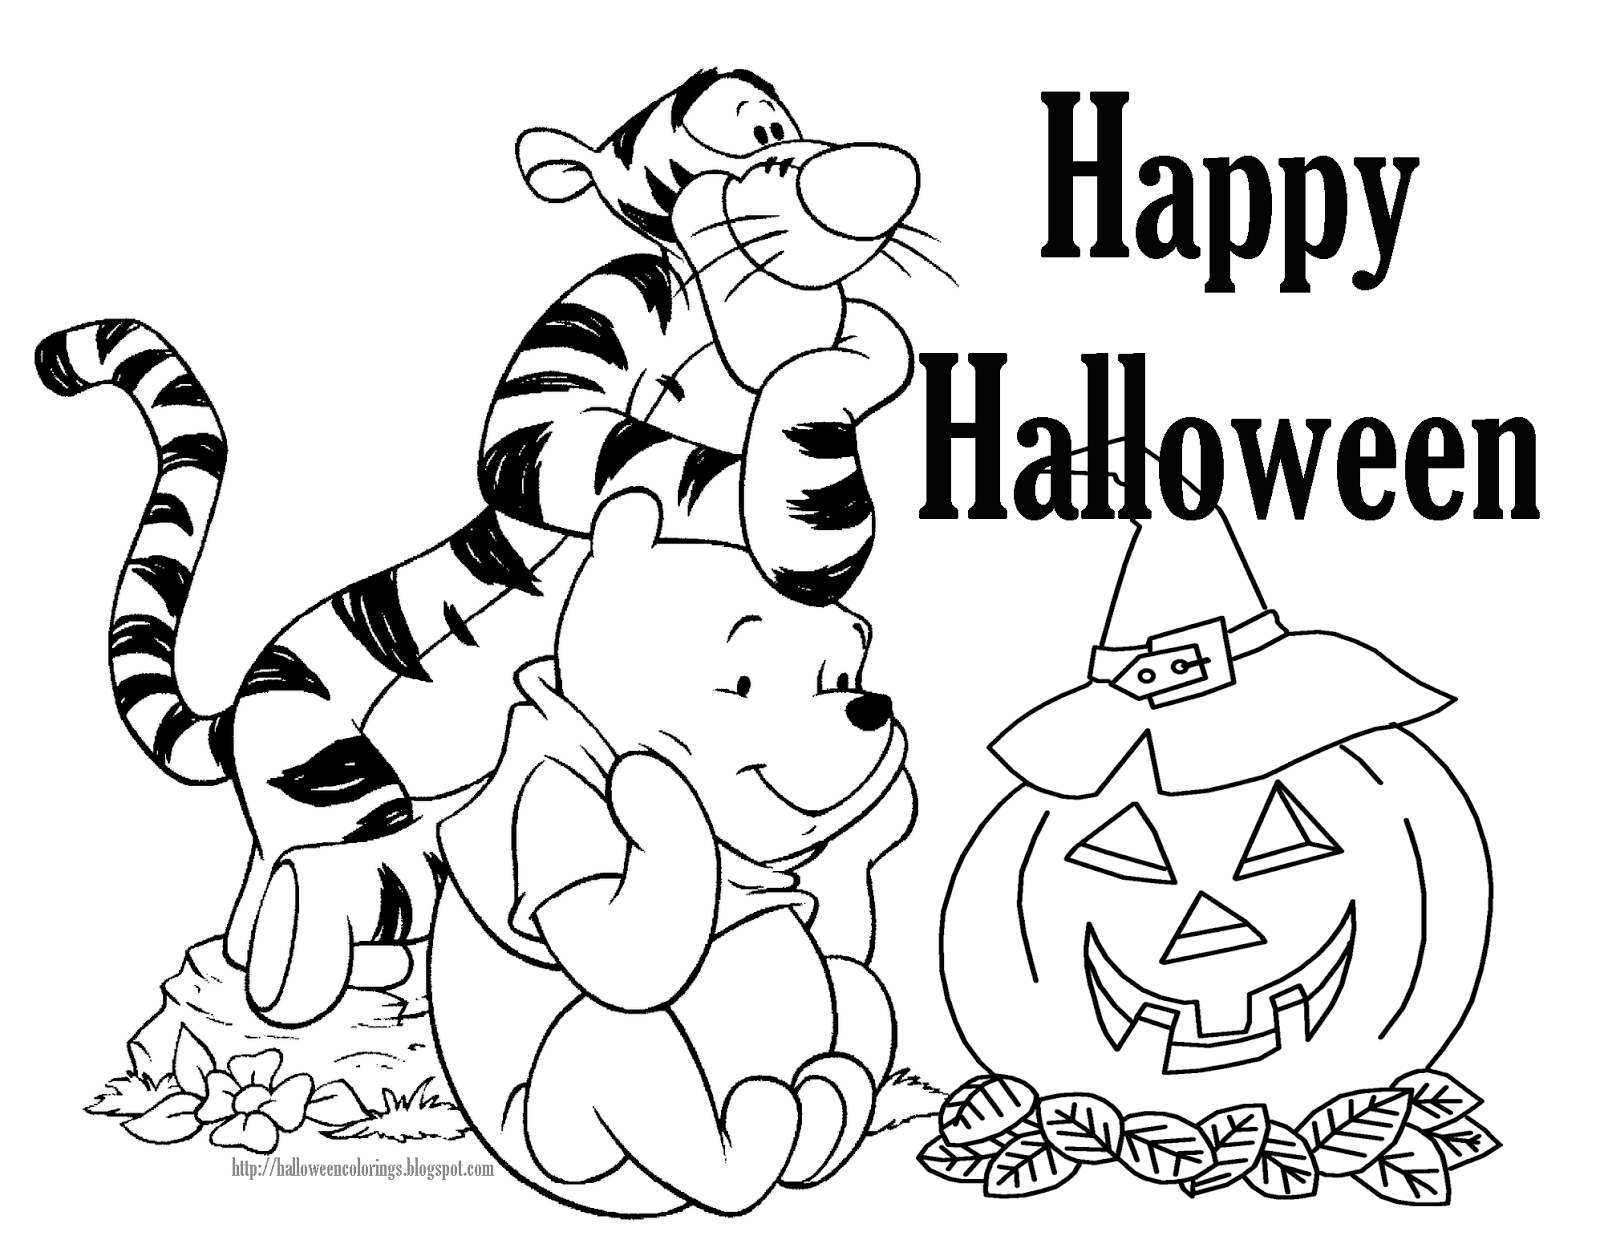 Free coloring pages winnie the pooh - Winnie The Pooh Two Halloween Colouring Pictures For You To Choose From One Is A Piglet Halloween Colouring